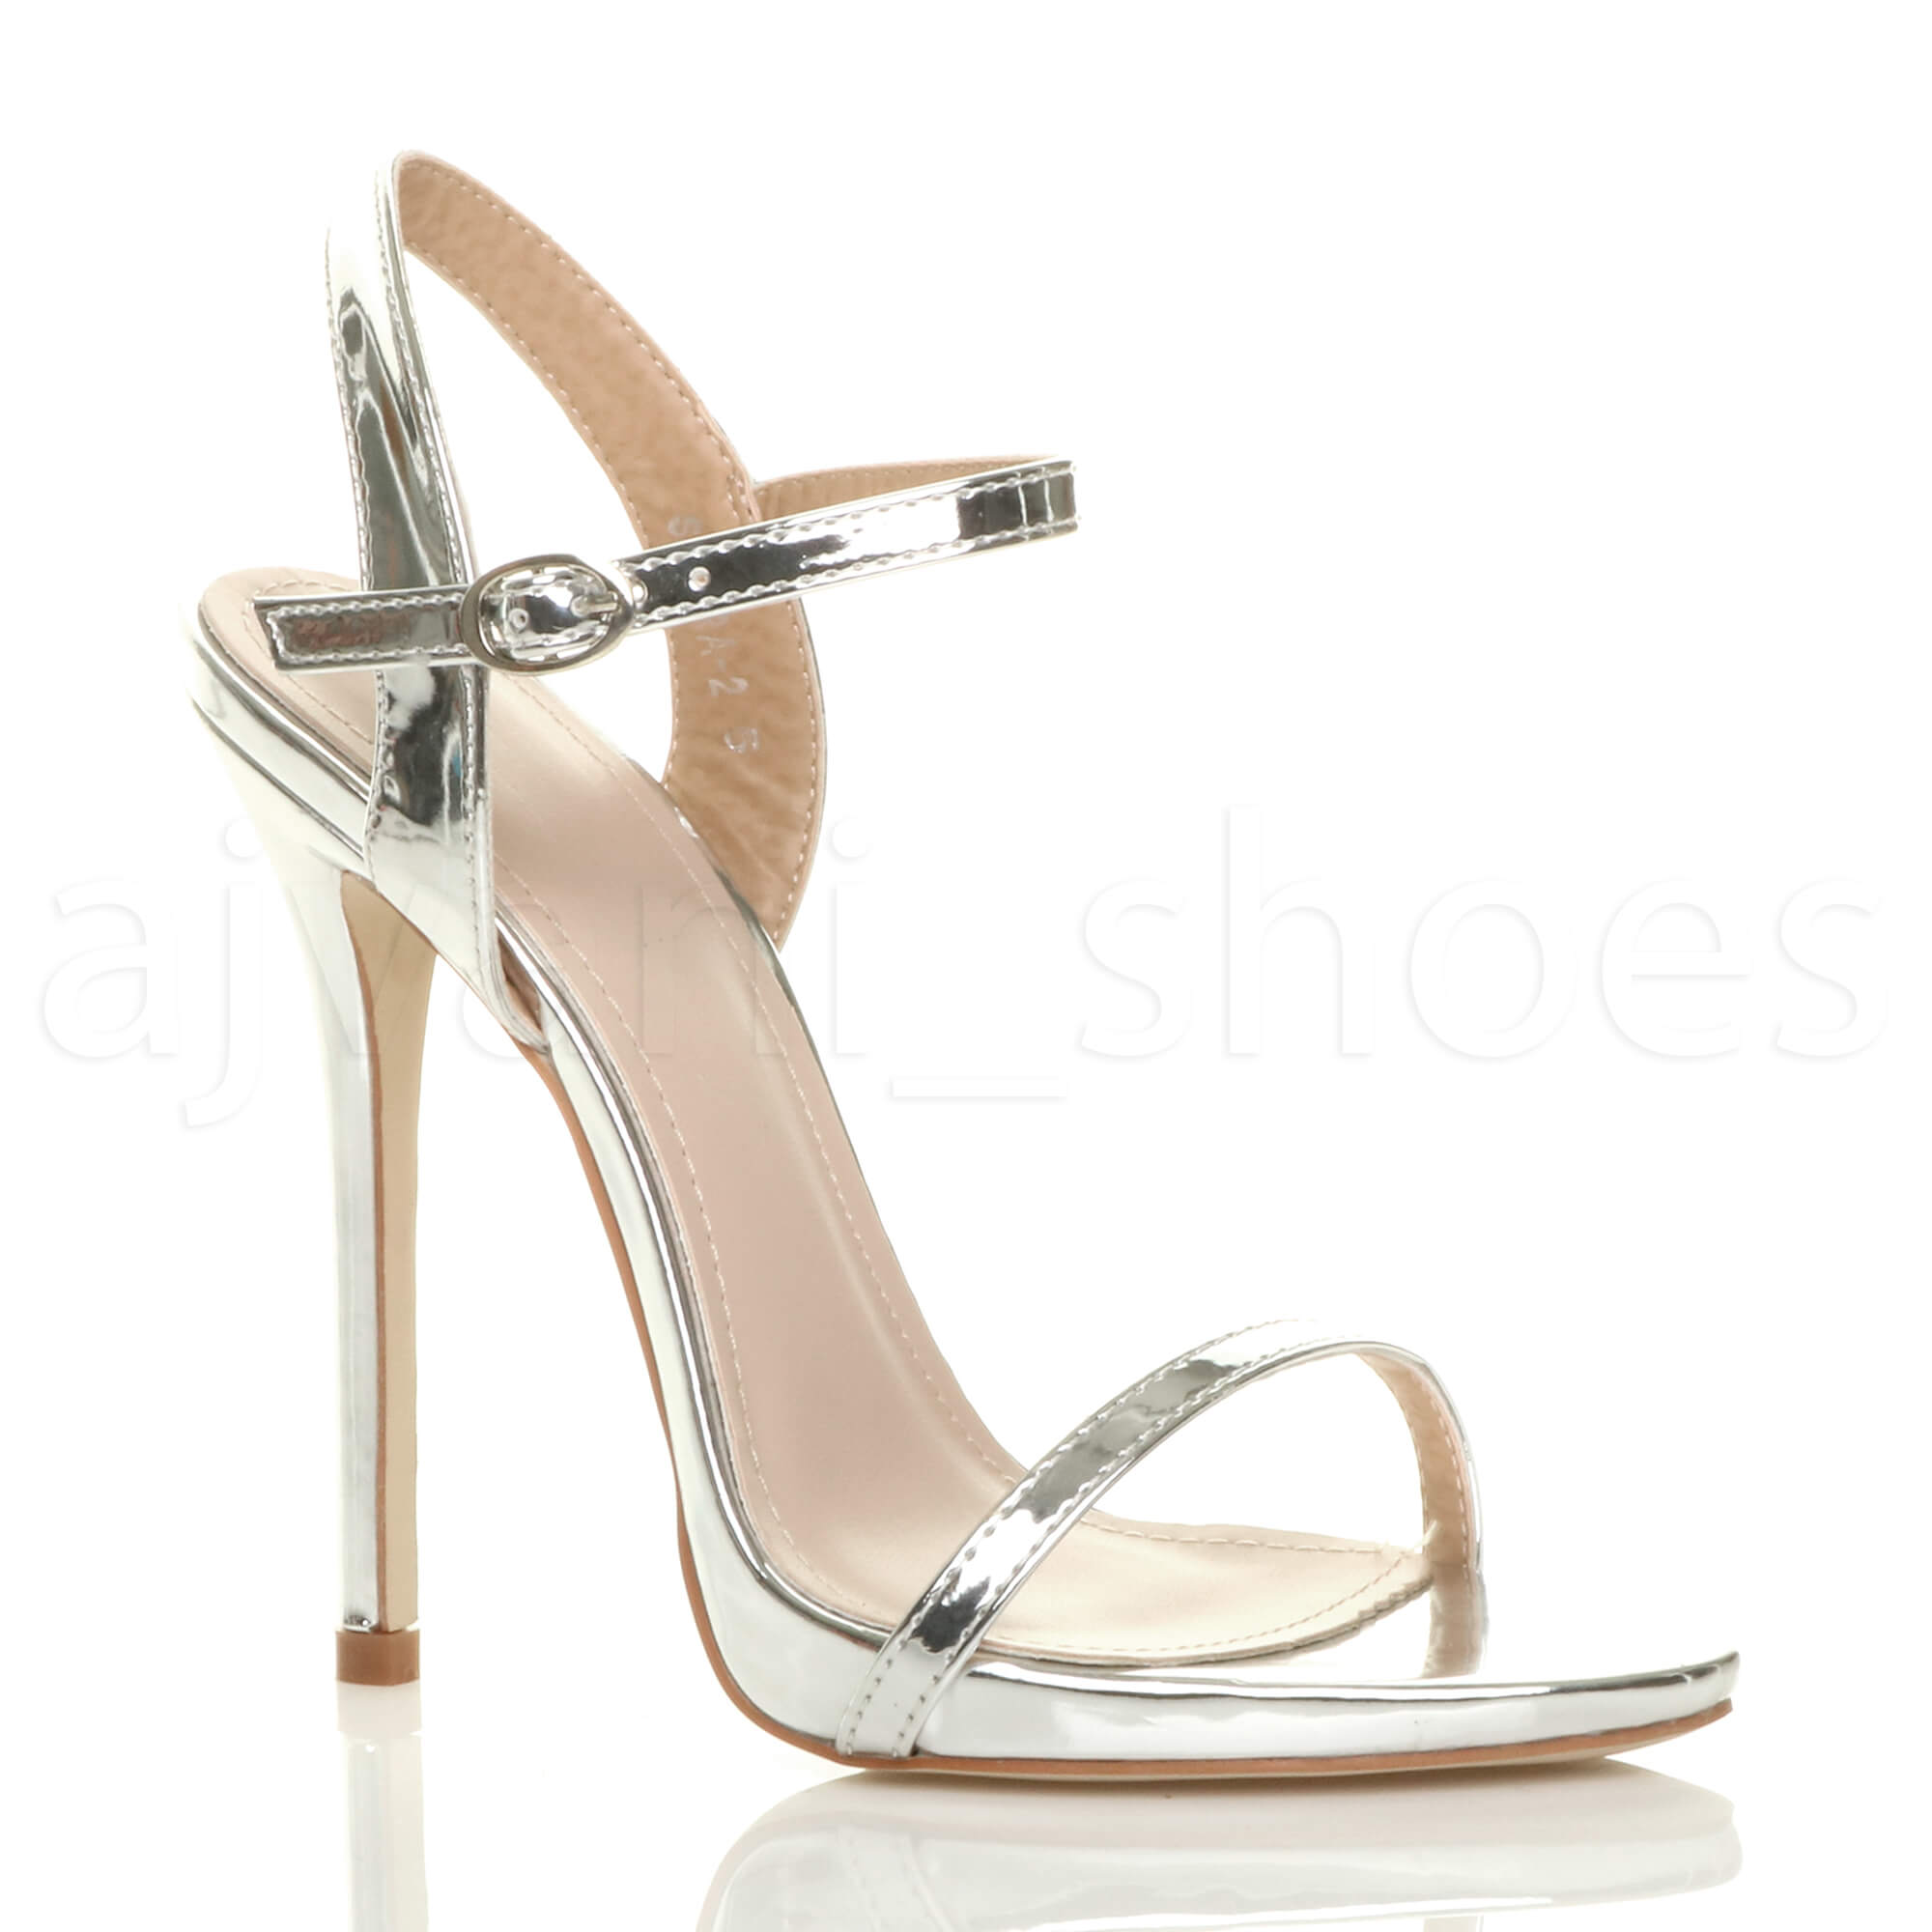 10b04da9371 WOMENS LADIES VERY HIGH HEEL BUCKLE STRAPPY METALLIC BARELY THERE SANDALS  SIZE